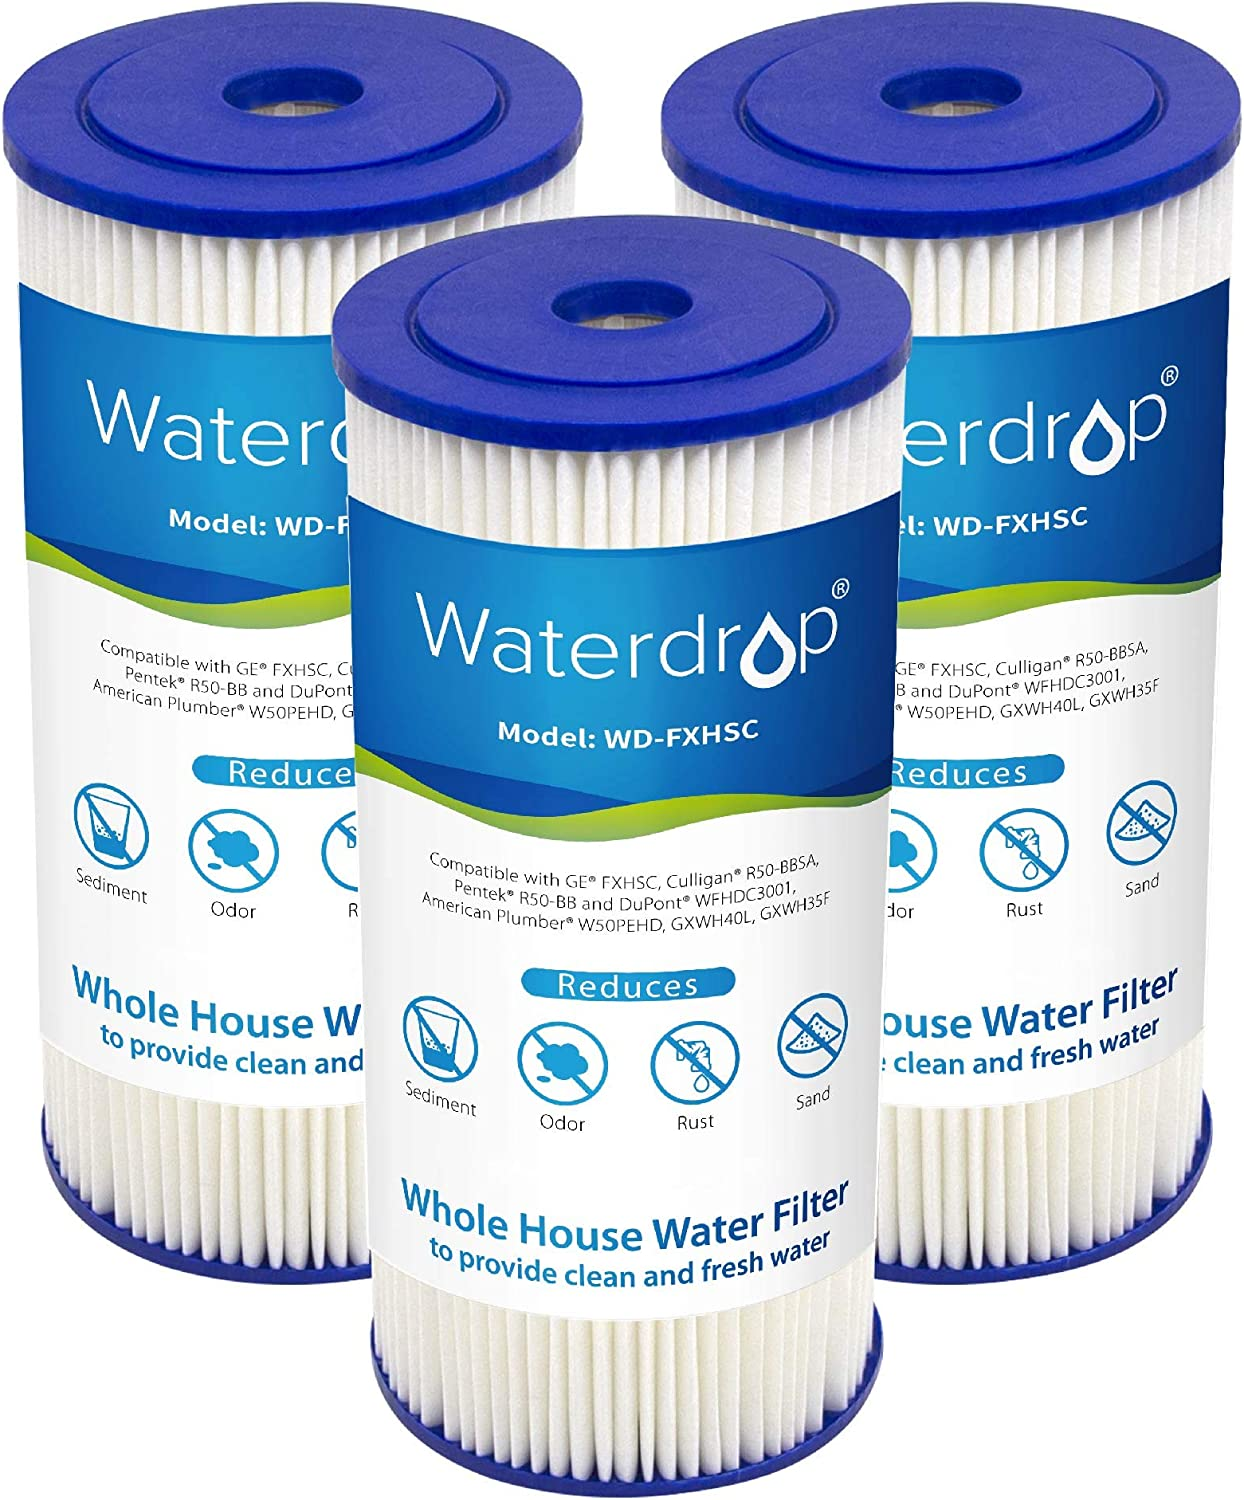 Waterdrop FXHSC Whole House Water Filter American Plumber W50PEHD Compatible with GE FXHSC Pack of 3 Culligan R50-BBSA GXWH35F GXWH40L Pentek R50-BB and Dupont WFHDC3001